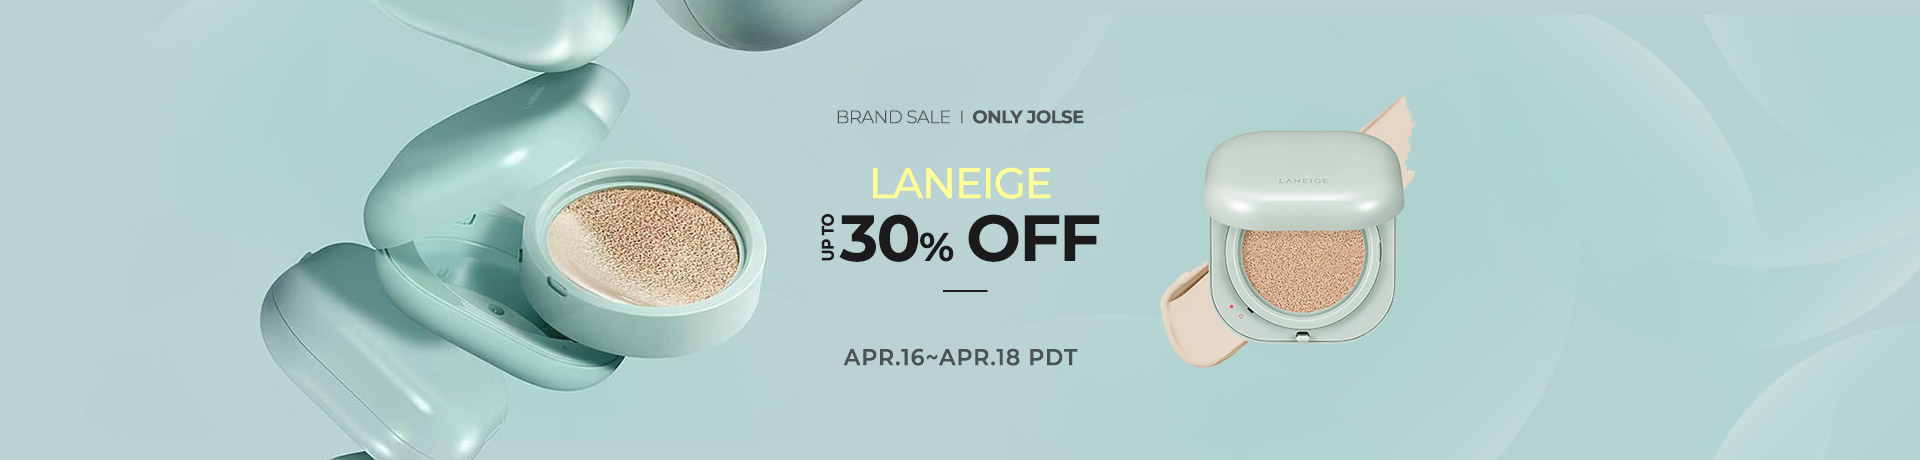 LANEIGE Up to 30% OFF